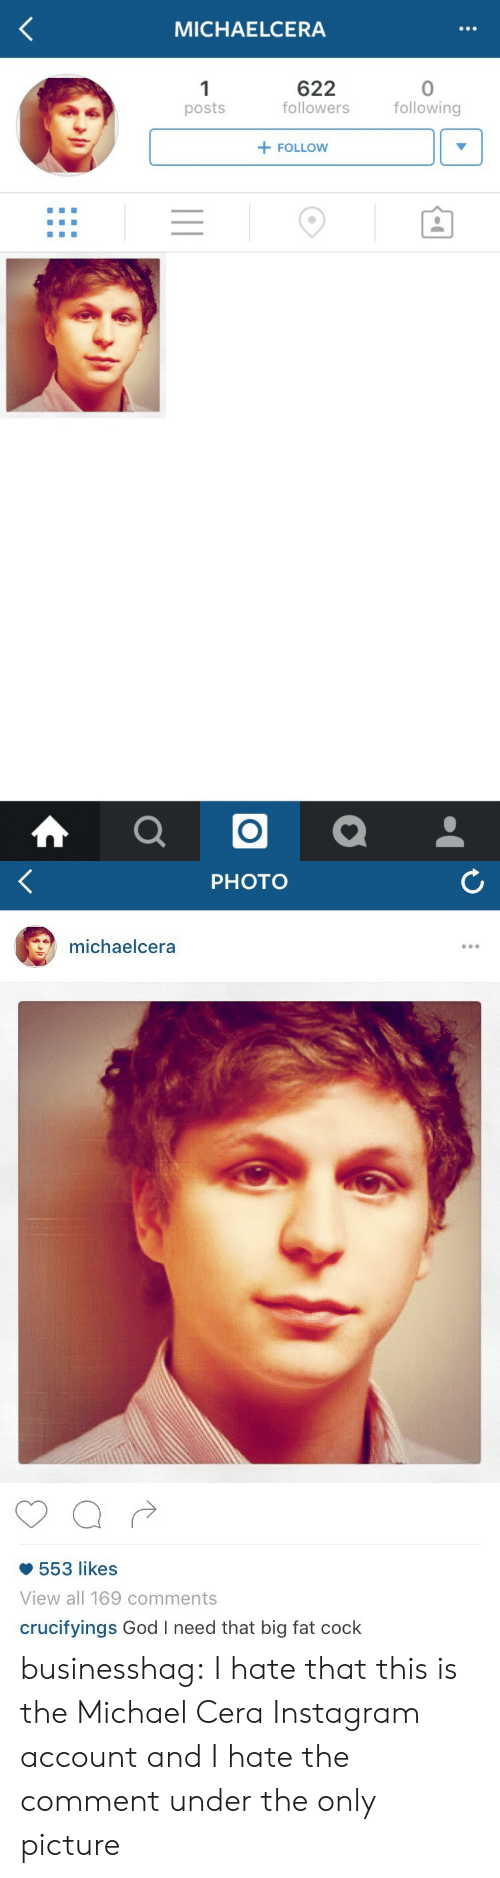 God, Instagram, and Michael Cera: MICHAELCERA  622  followers  0  following  posts  + FOLLOW   PHOTO  michaelcera  553 likes  View all 169 comments  crucifyings God I need that big fat cock businesshag:  I hate that this is the Michael Cera Instagram account and I hate the comment under the only picture